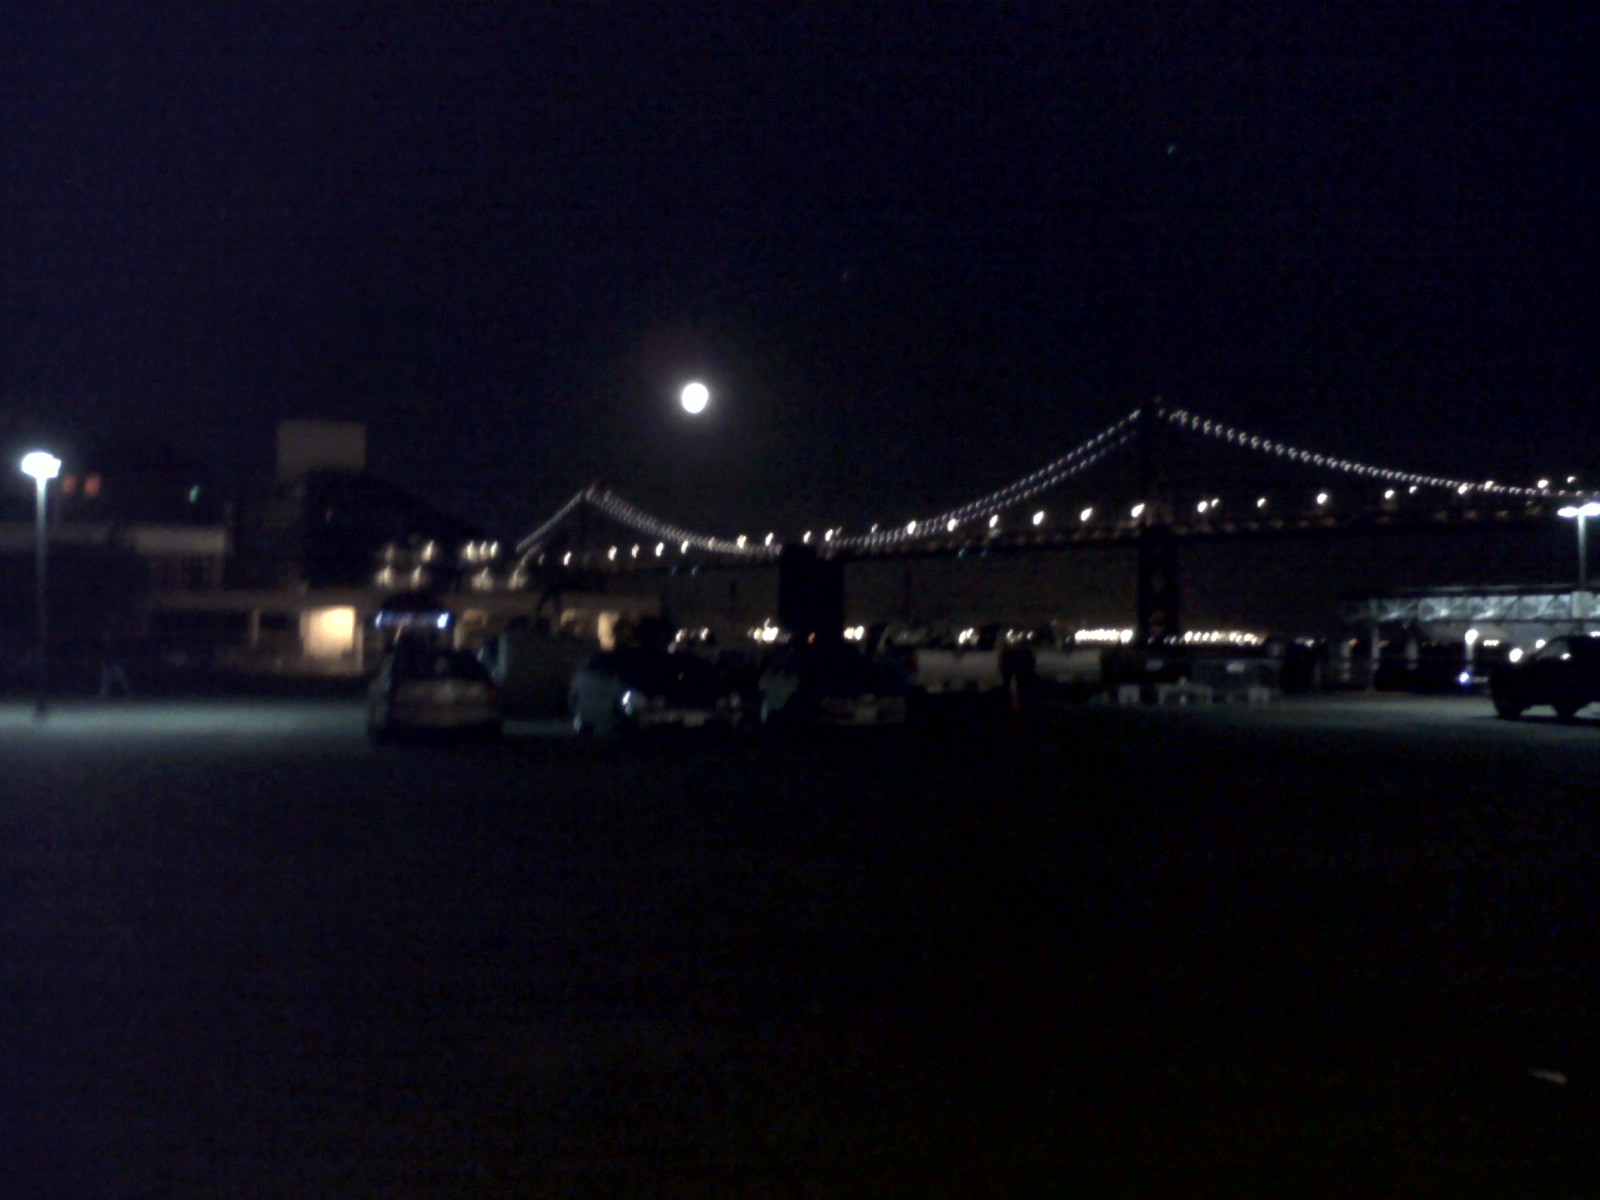 An SF bridge at night